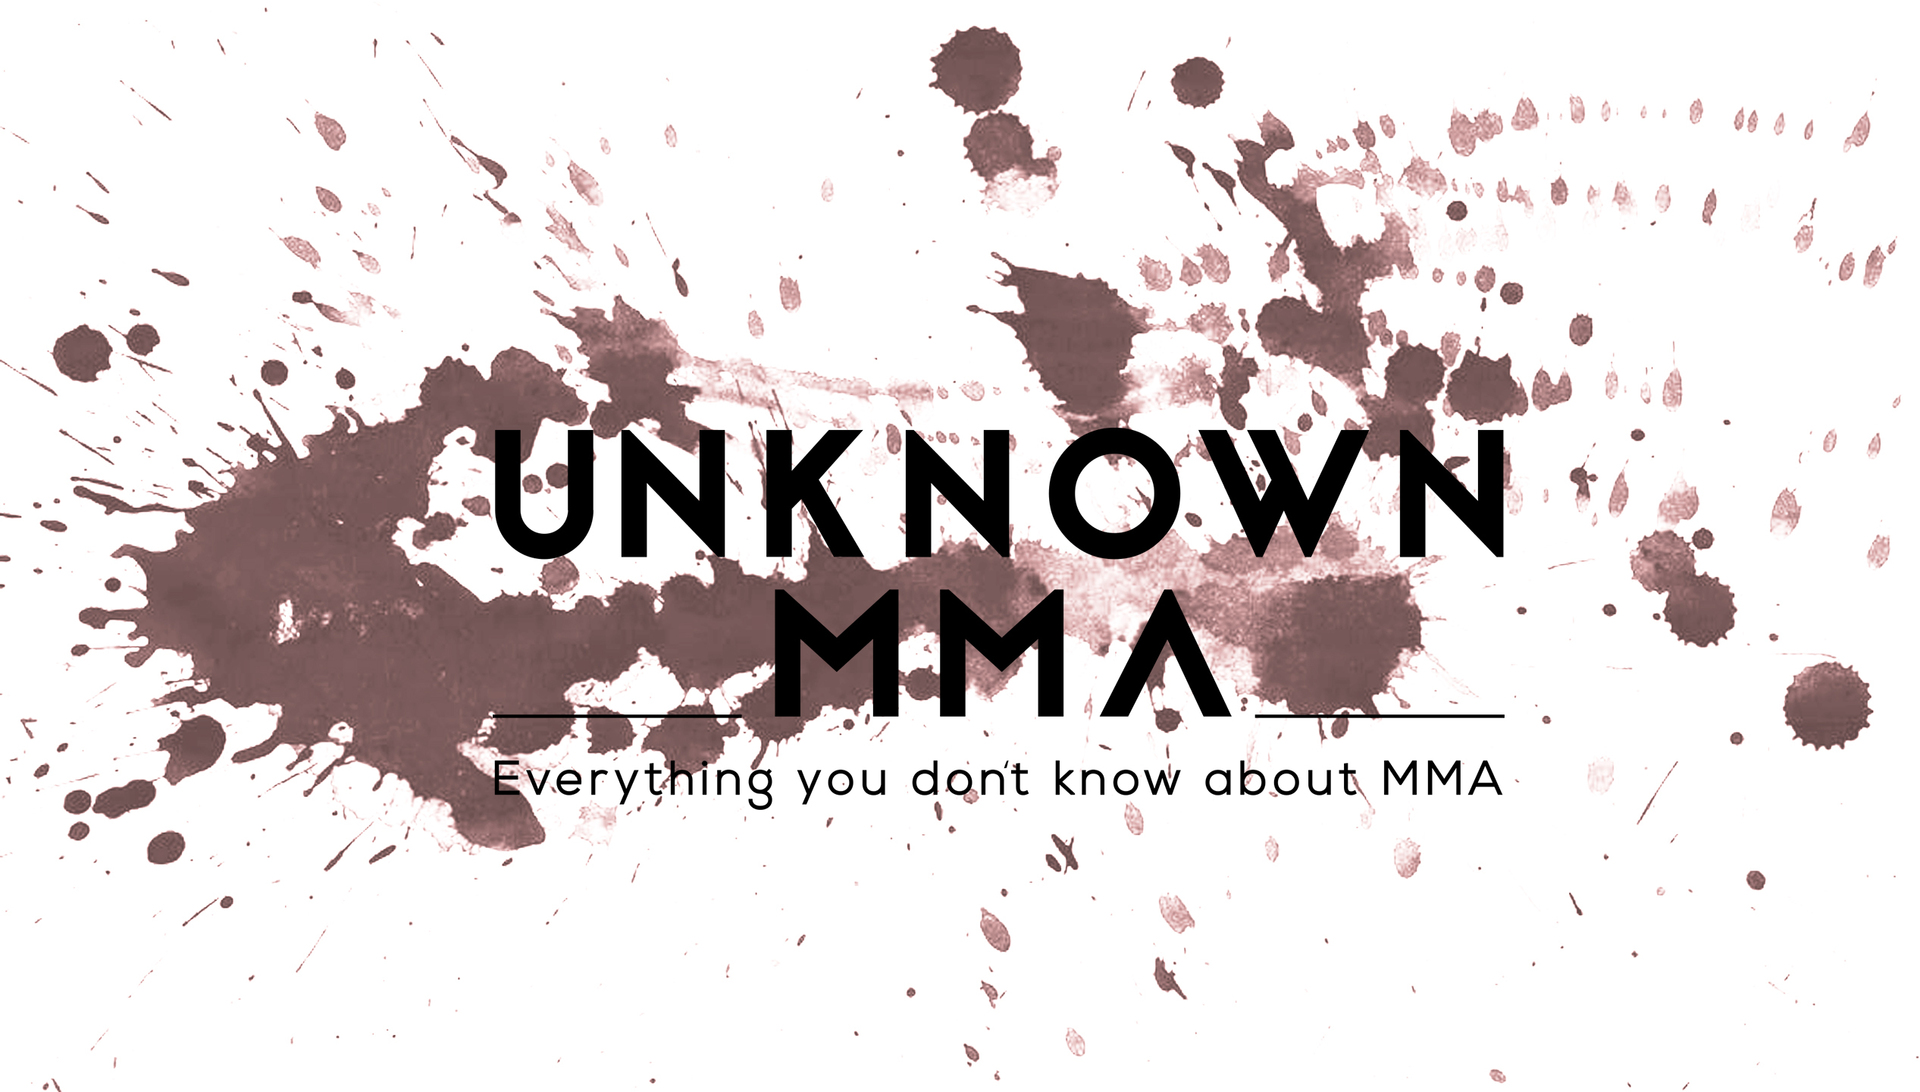 Unknown MMA by Chica Store